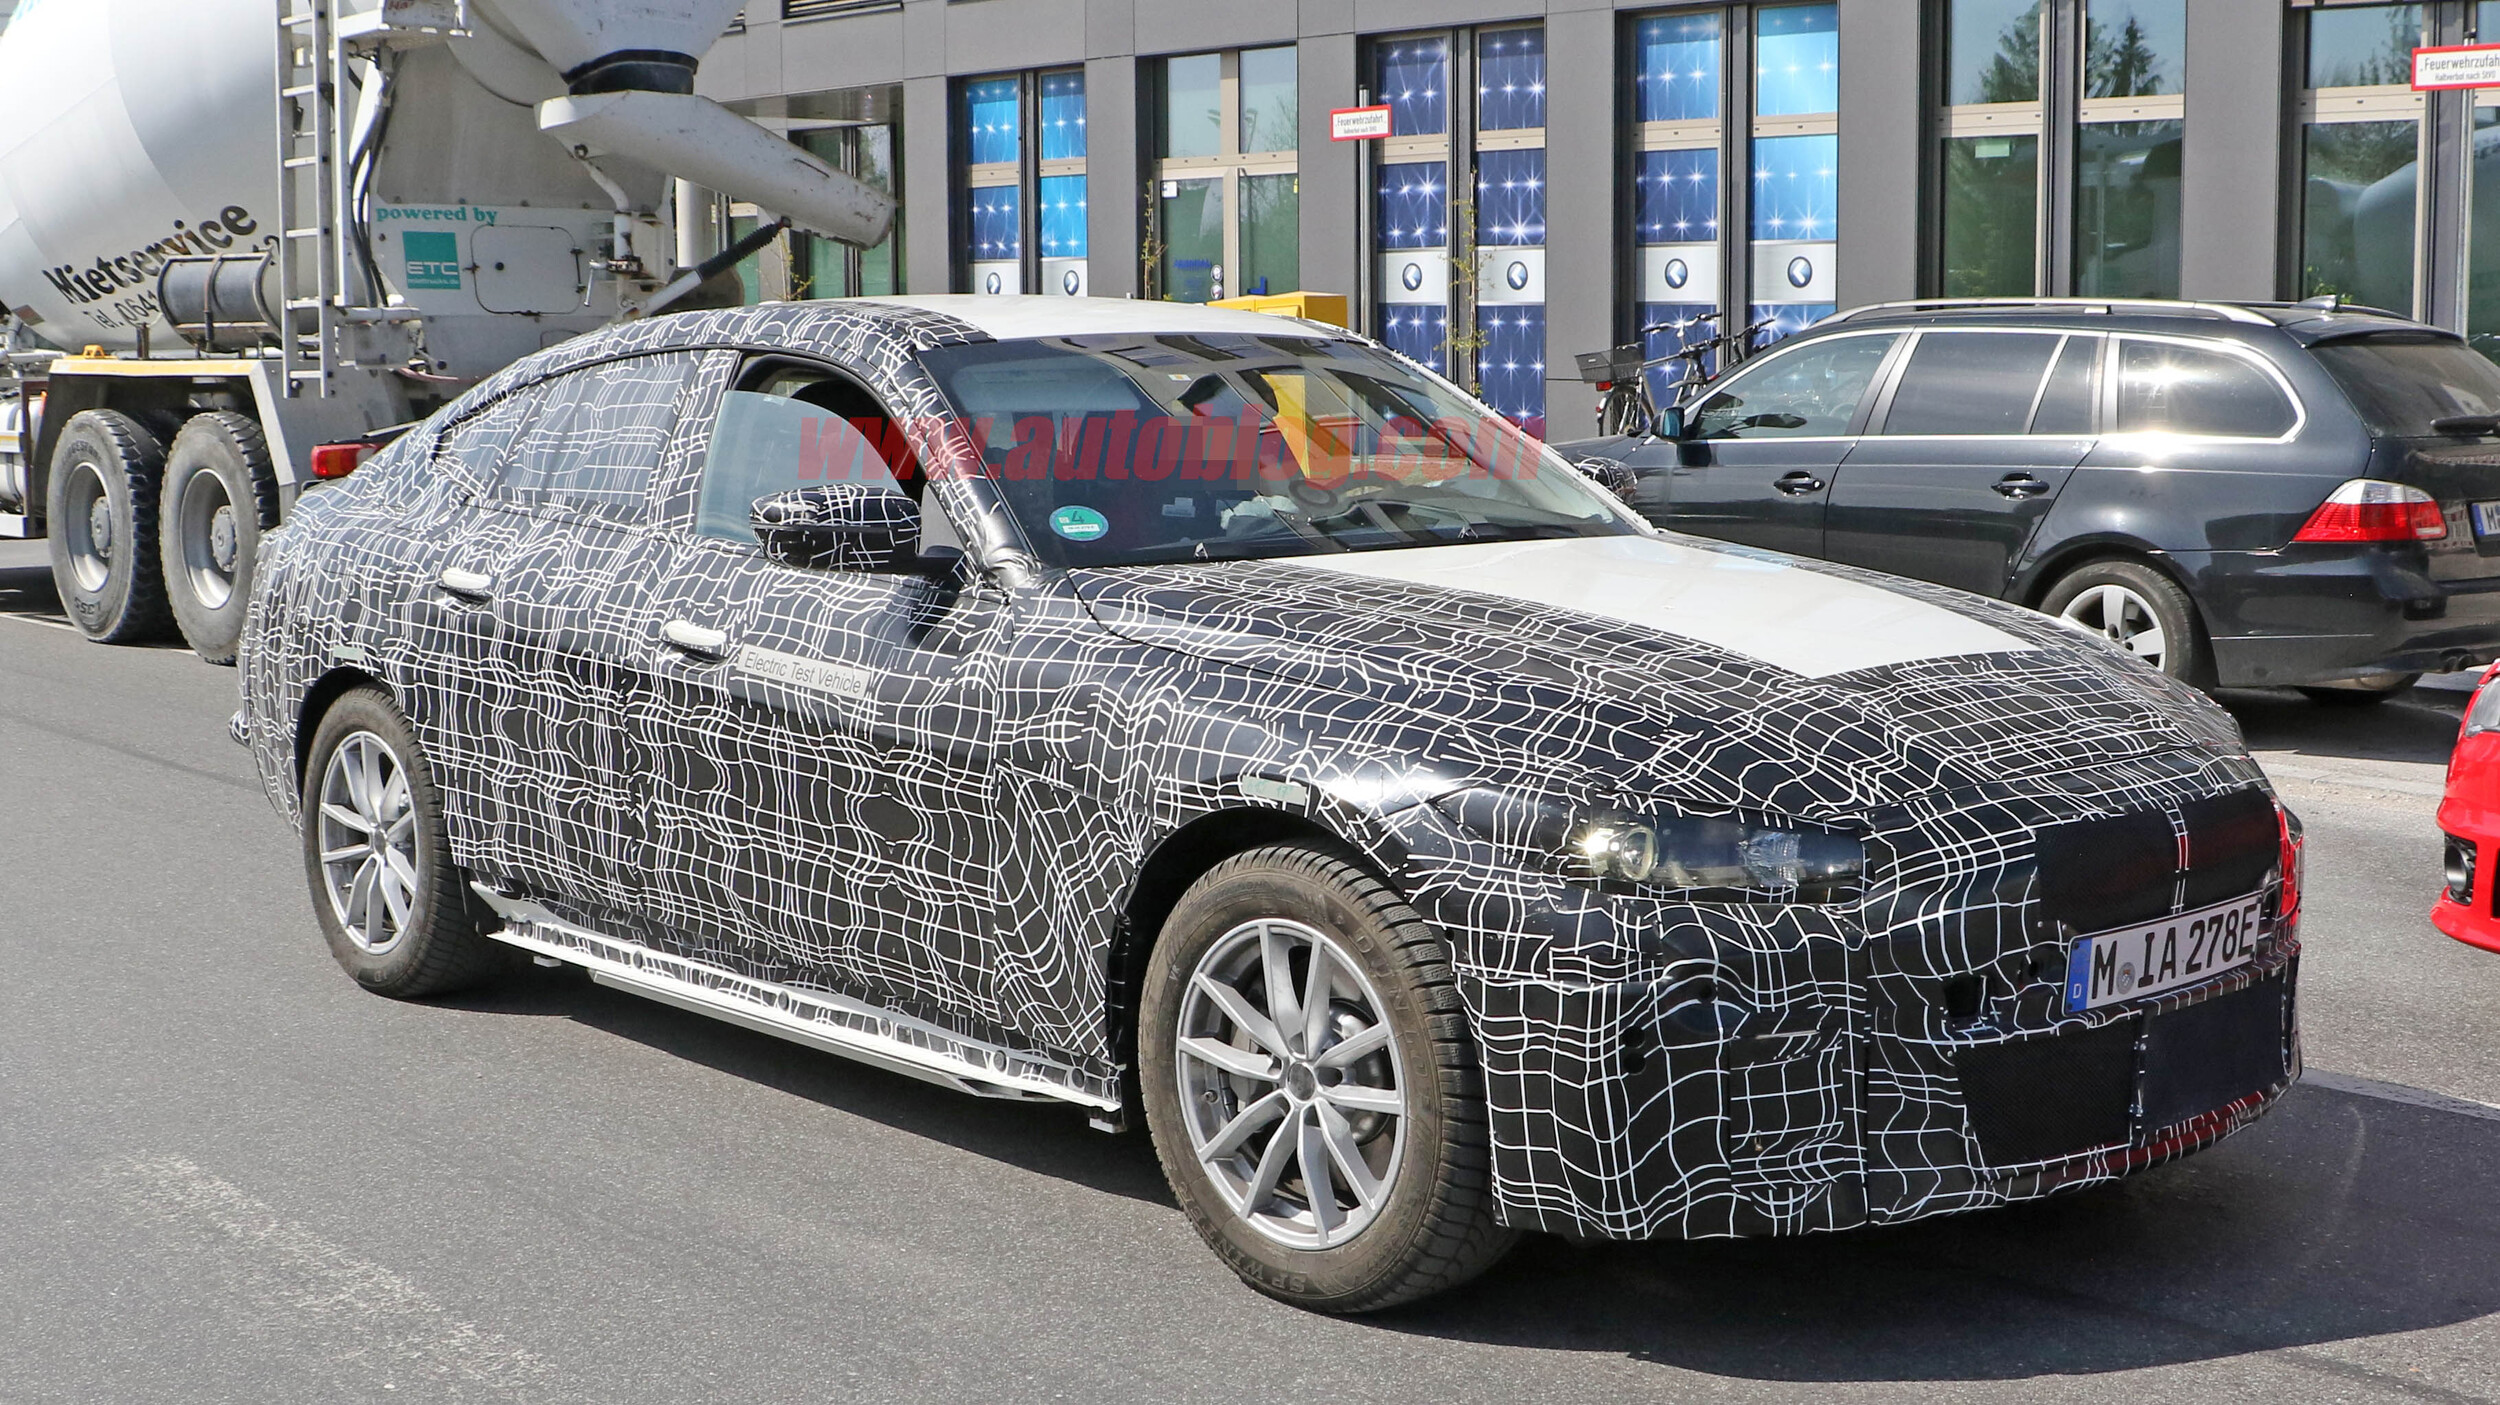 Certified Pre Owned Bmw >> BMW i4 electric vehicle spied out testing with interior exposed | Autoblog